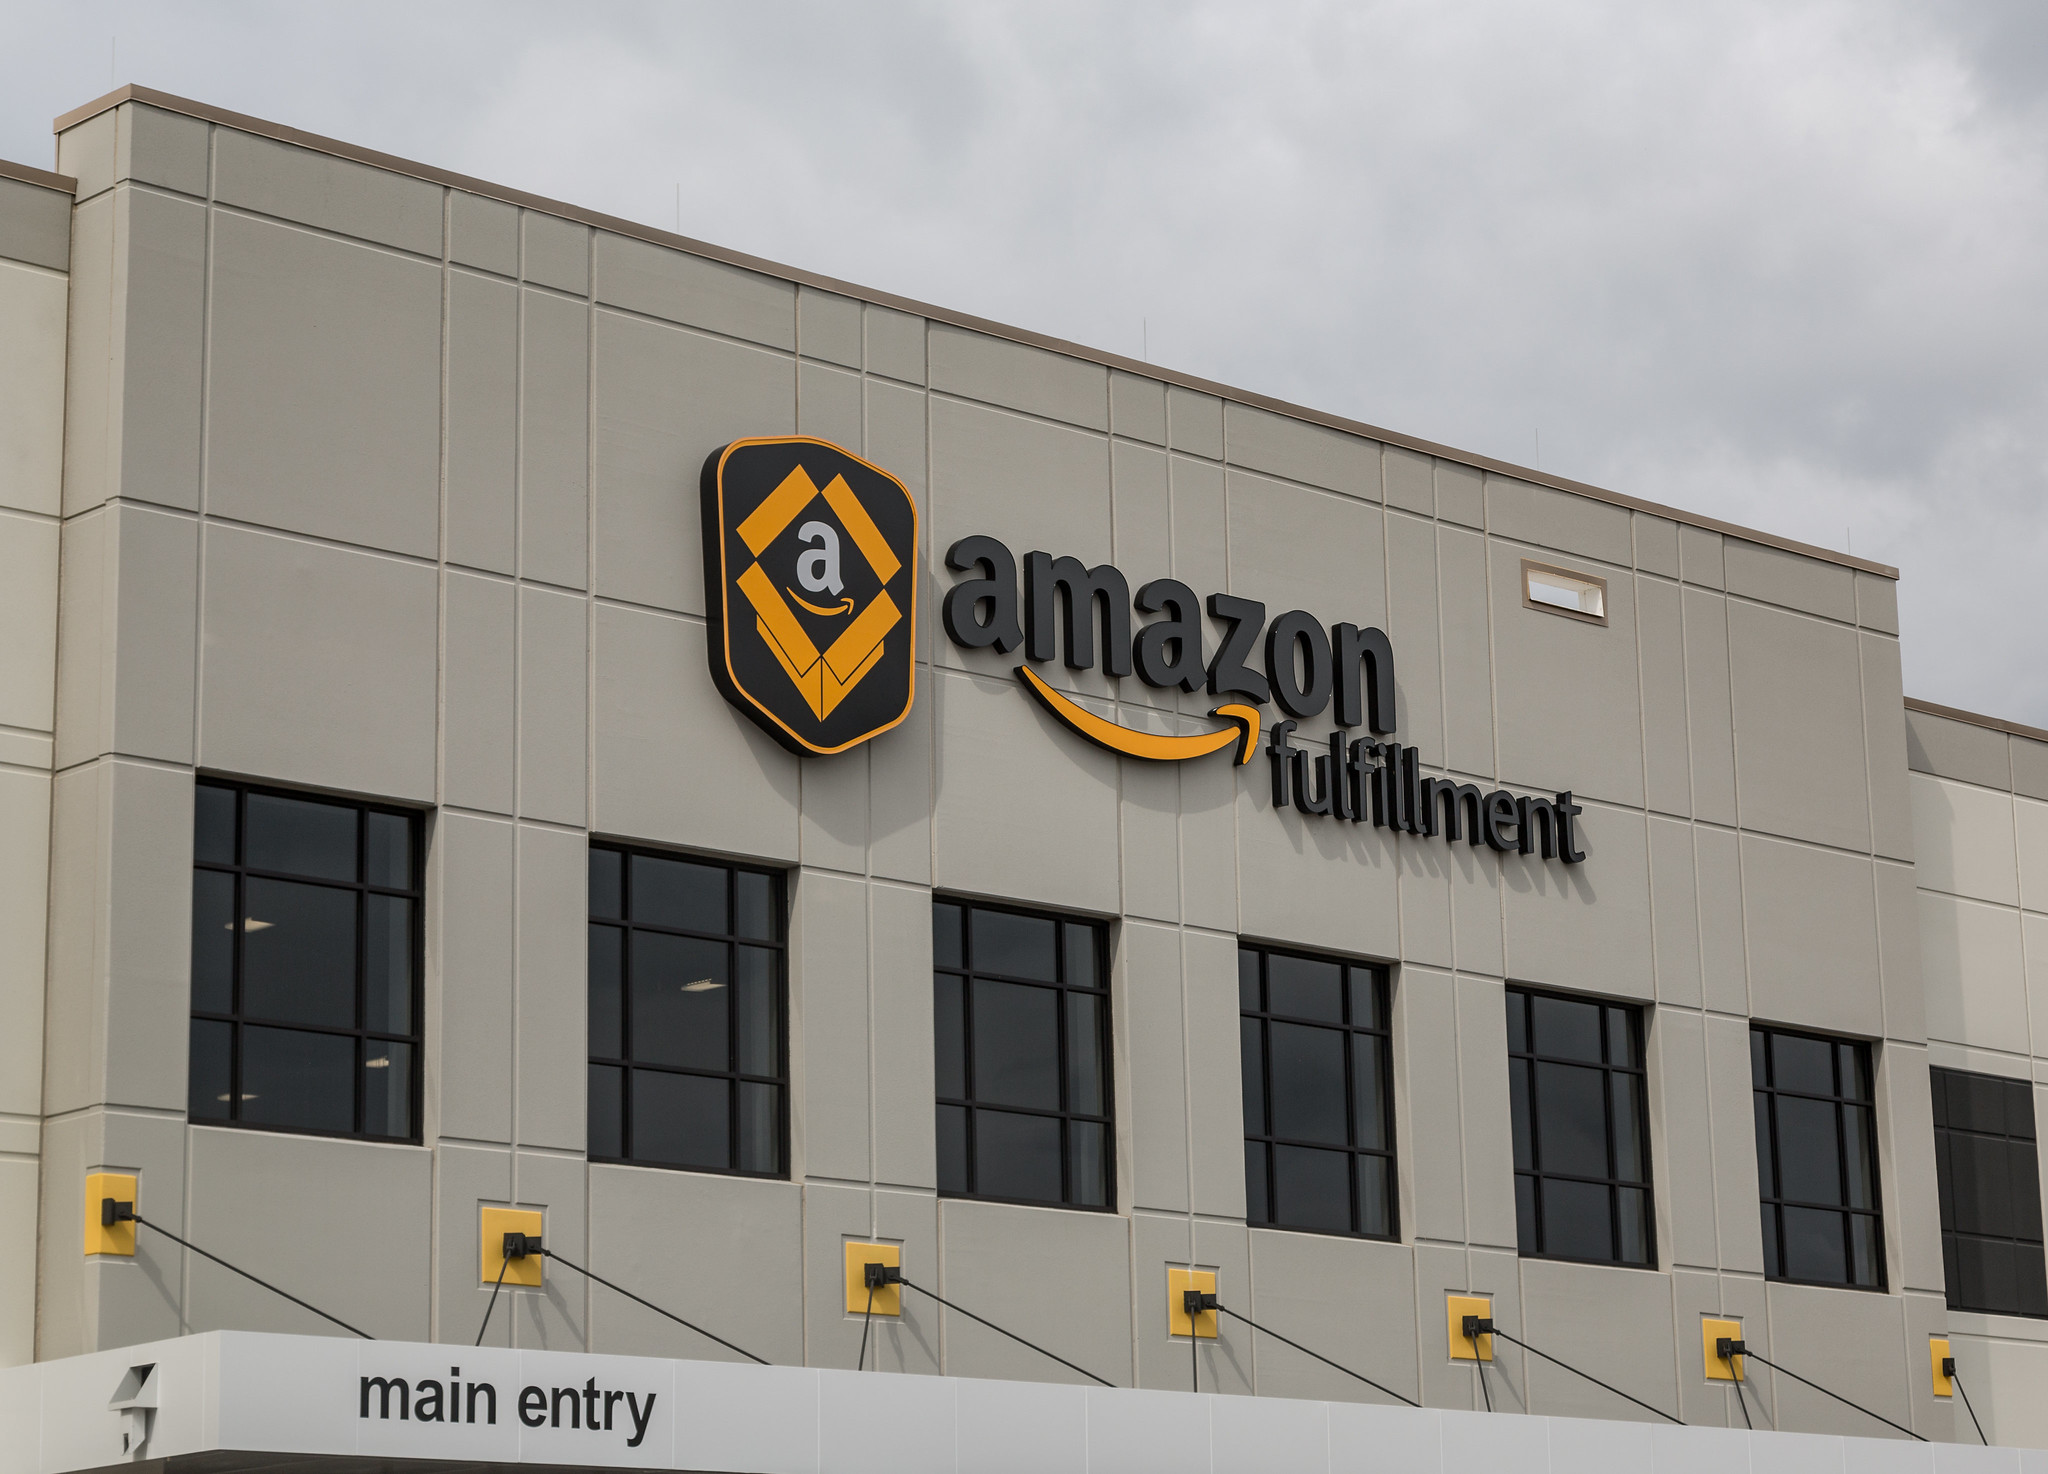 amazon fulfillment center, amazon